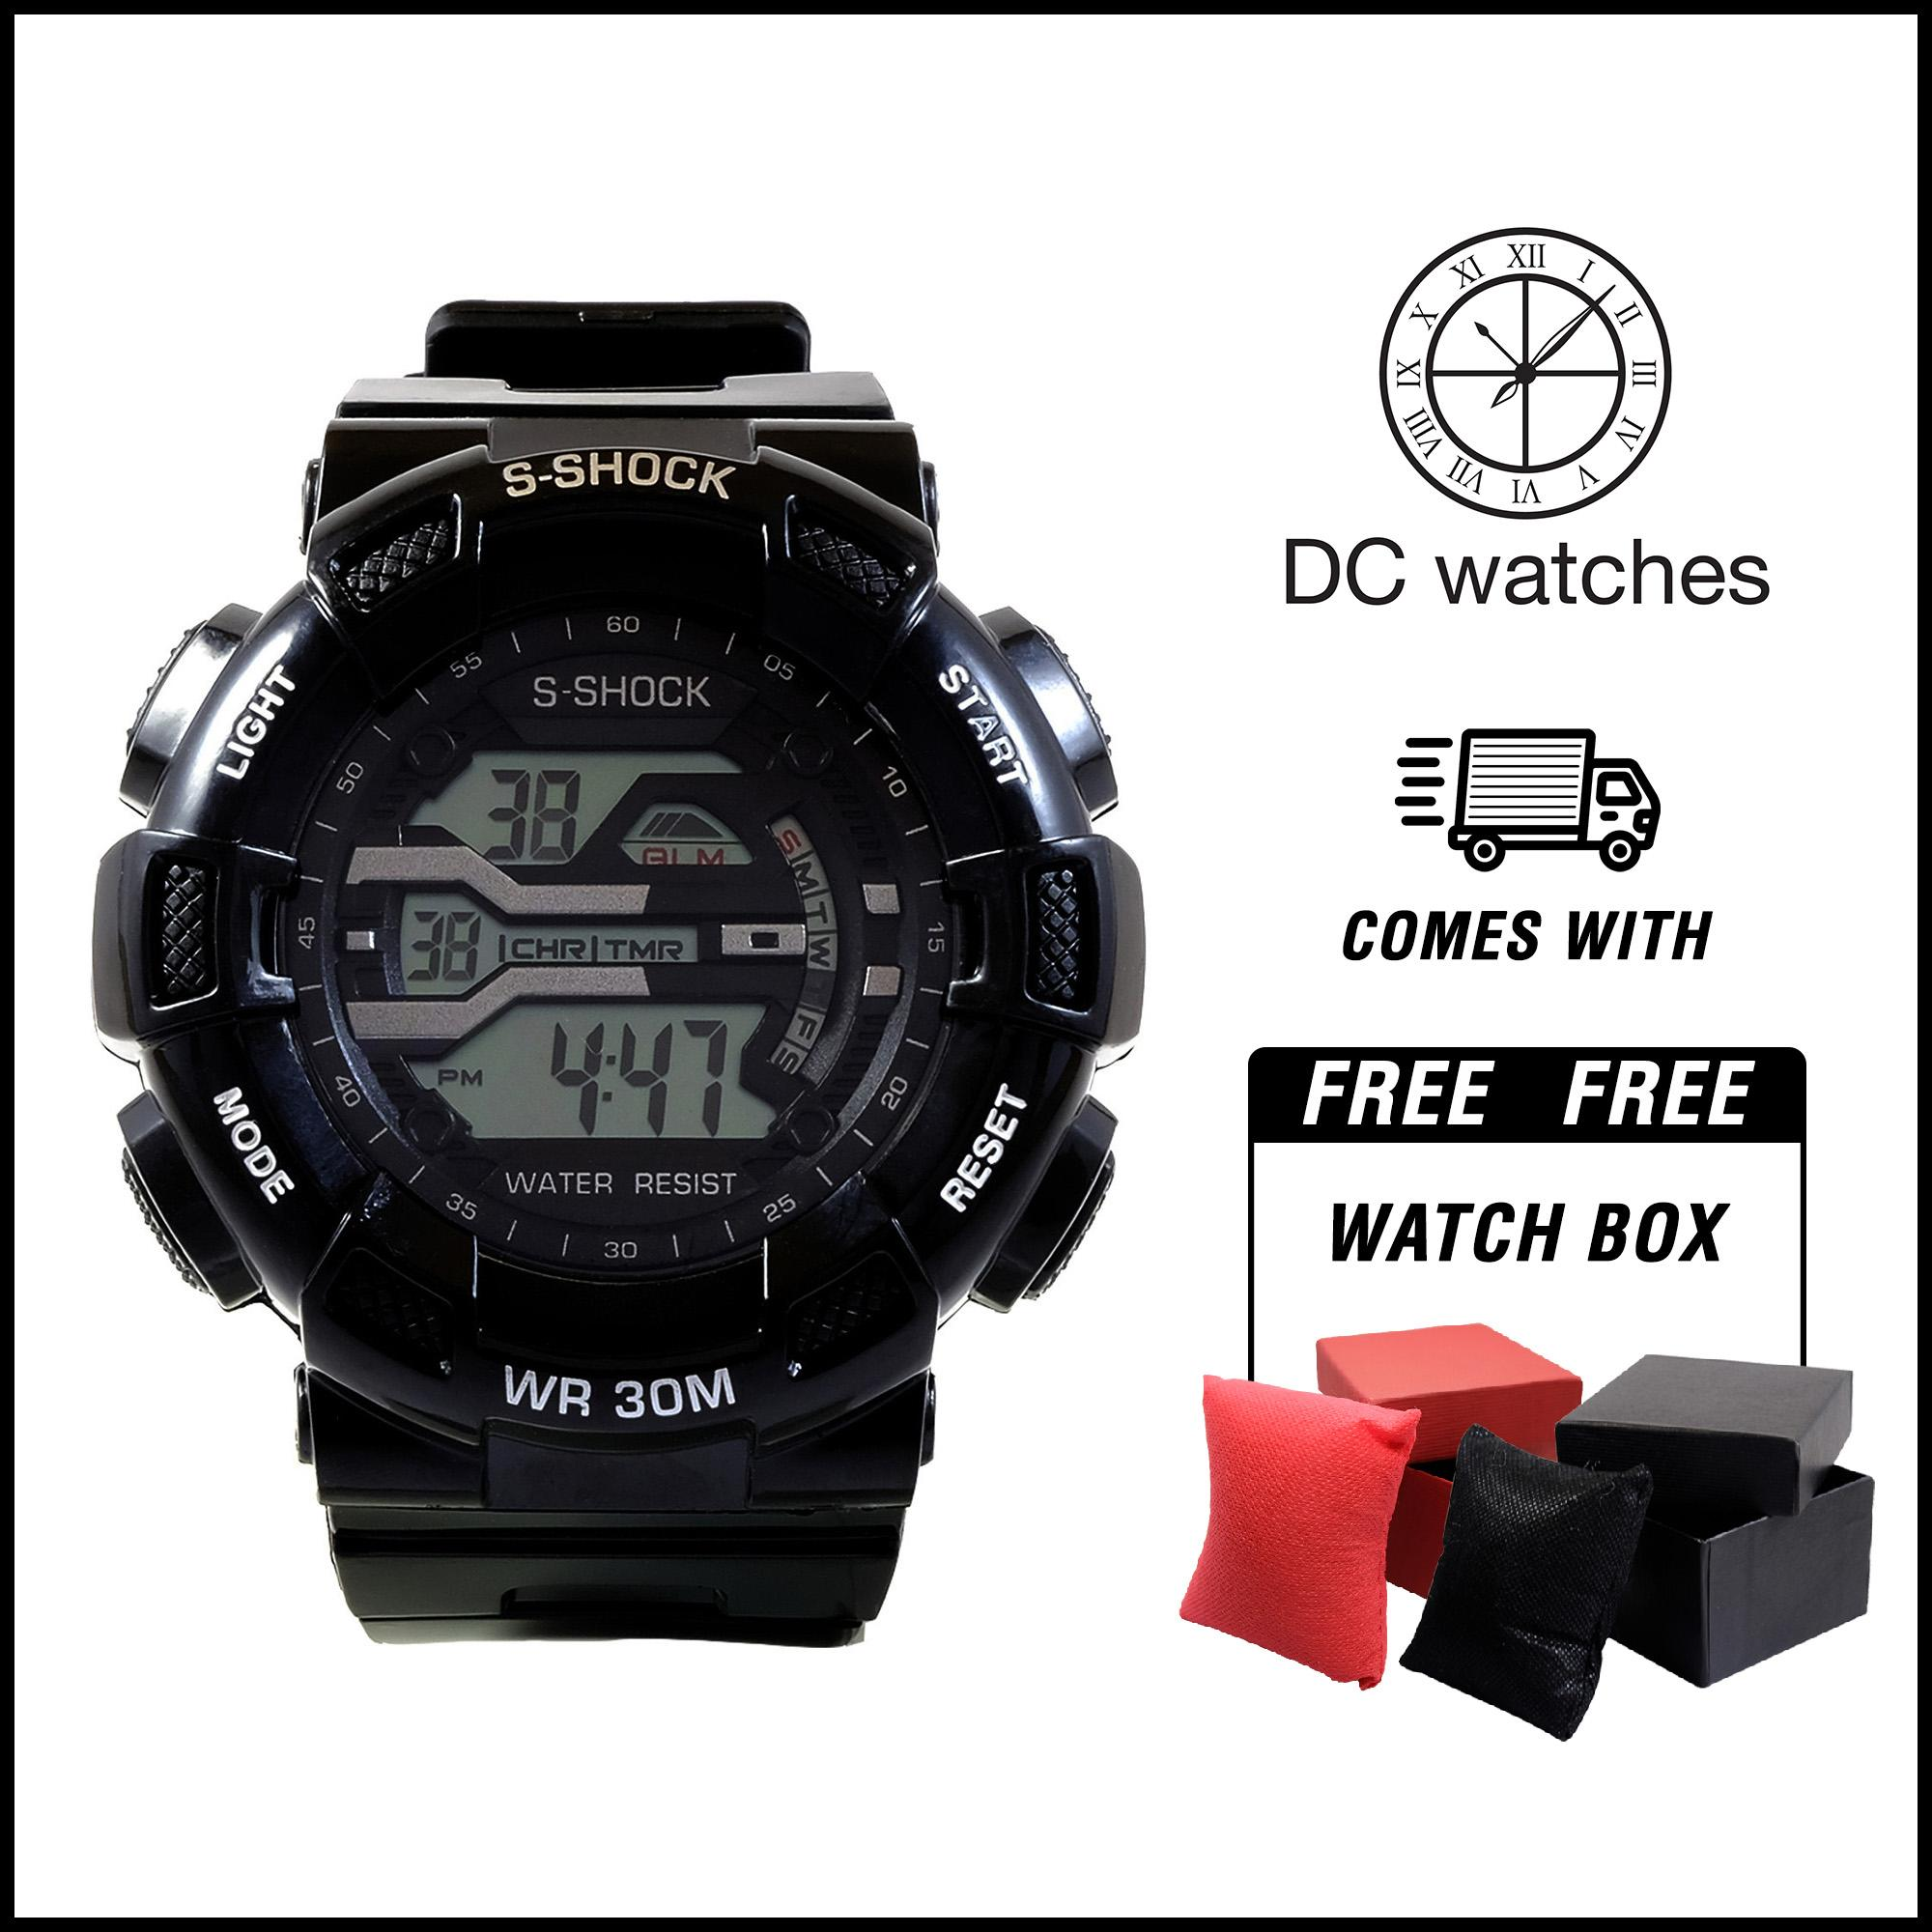 DC Watches S-shock 9976 3bar watch for men watch for women watches sale korean